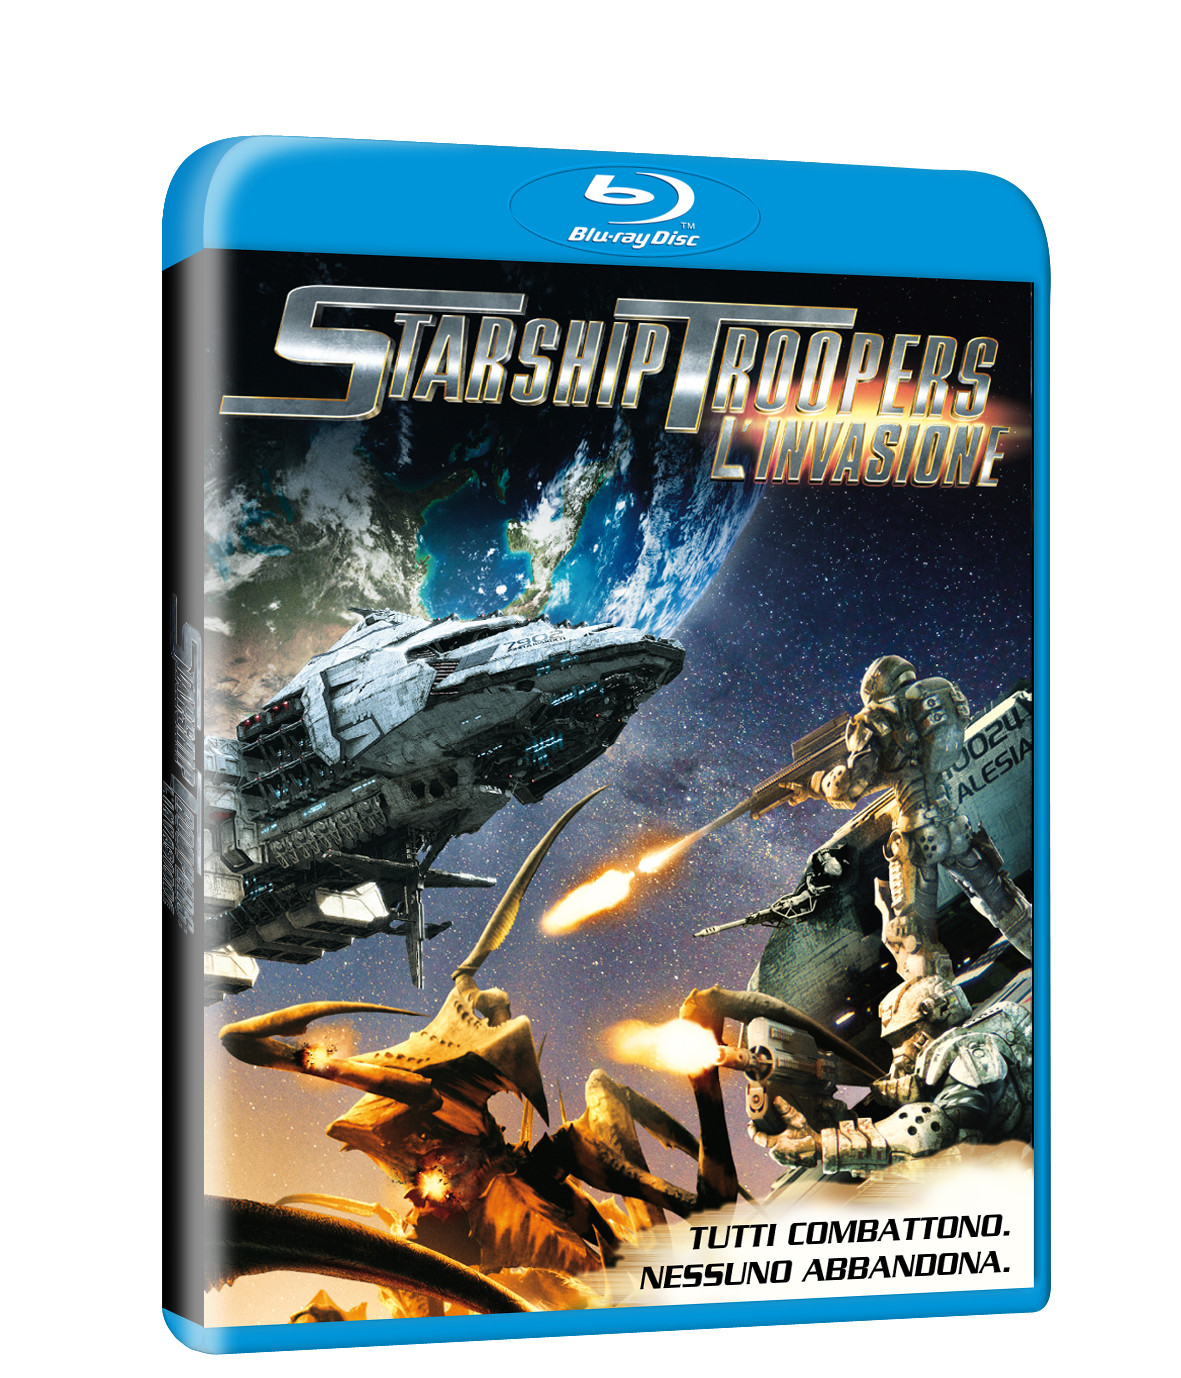 Starship troopers invasione blu-ray